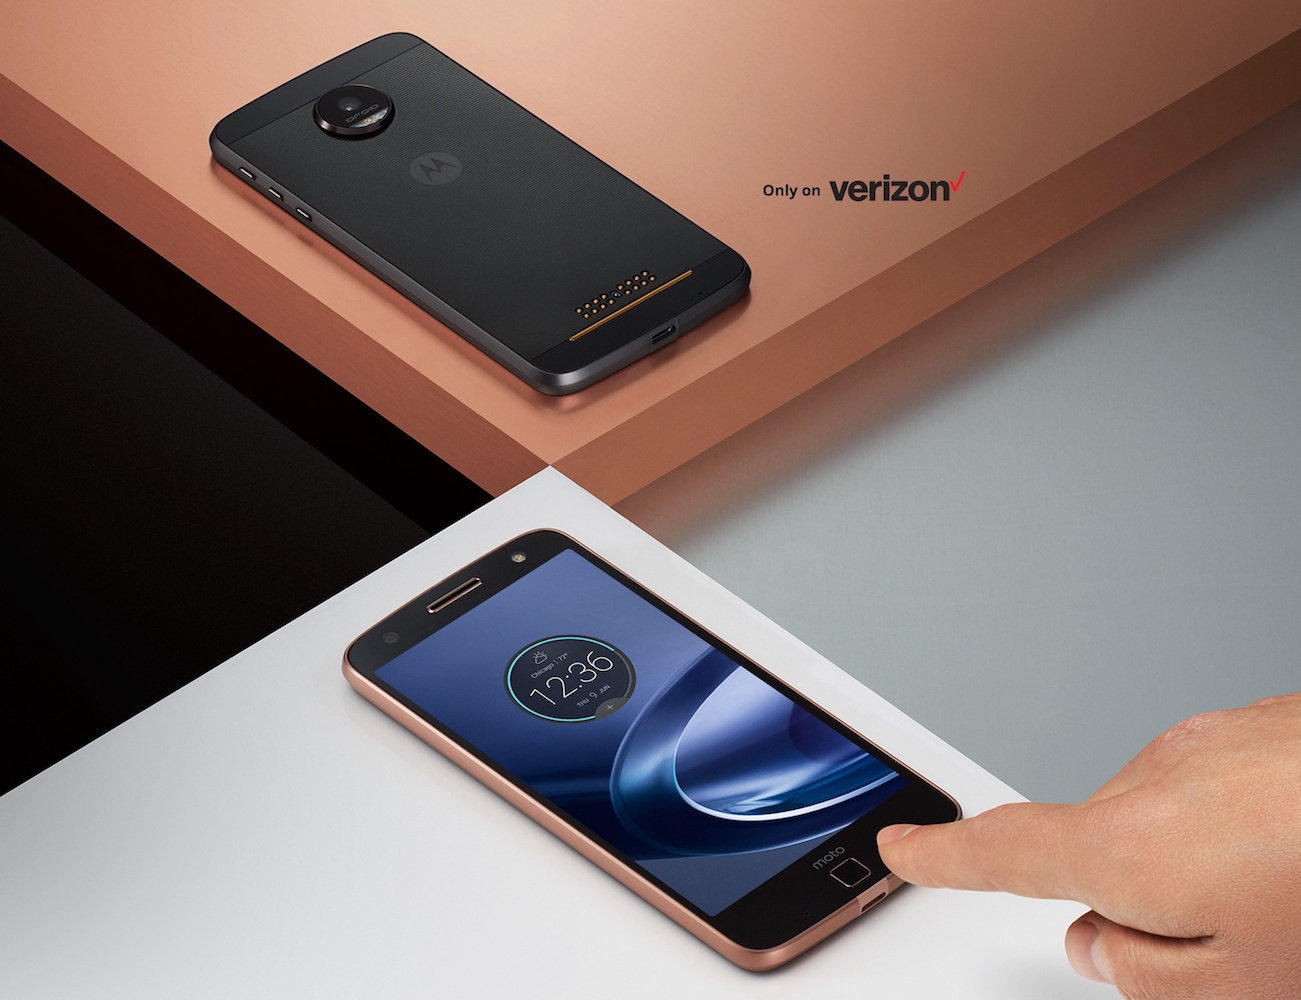 Moto Z and Moto Z Force Smartphones